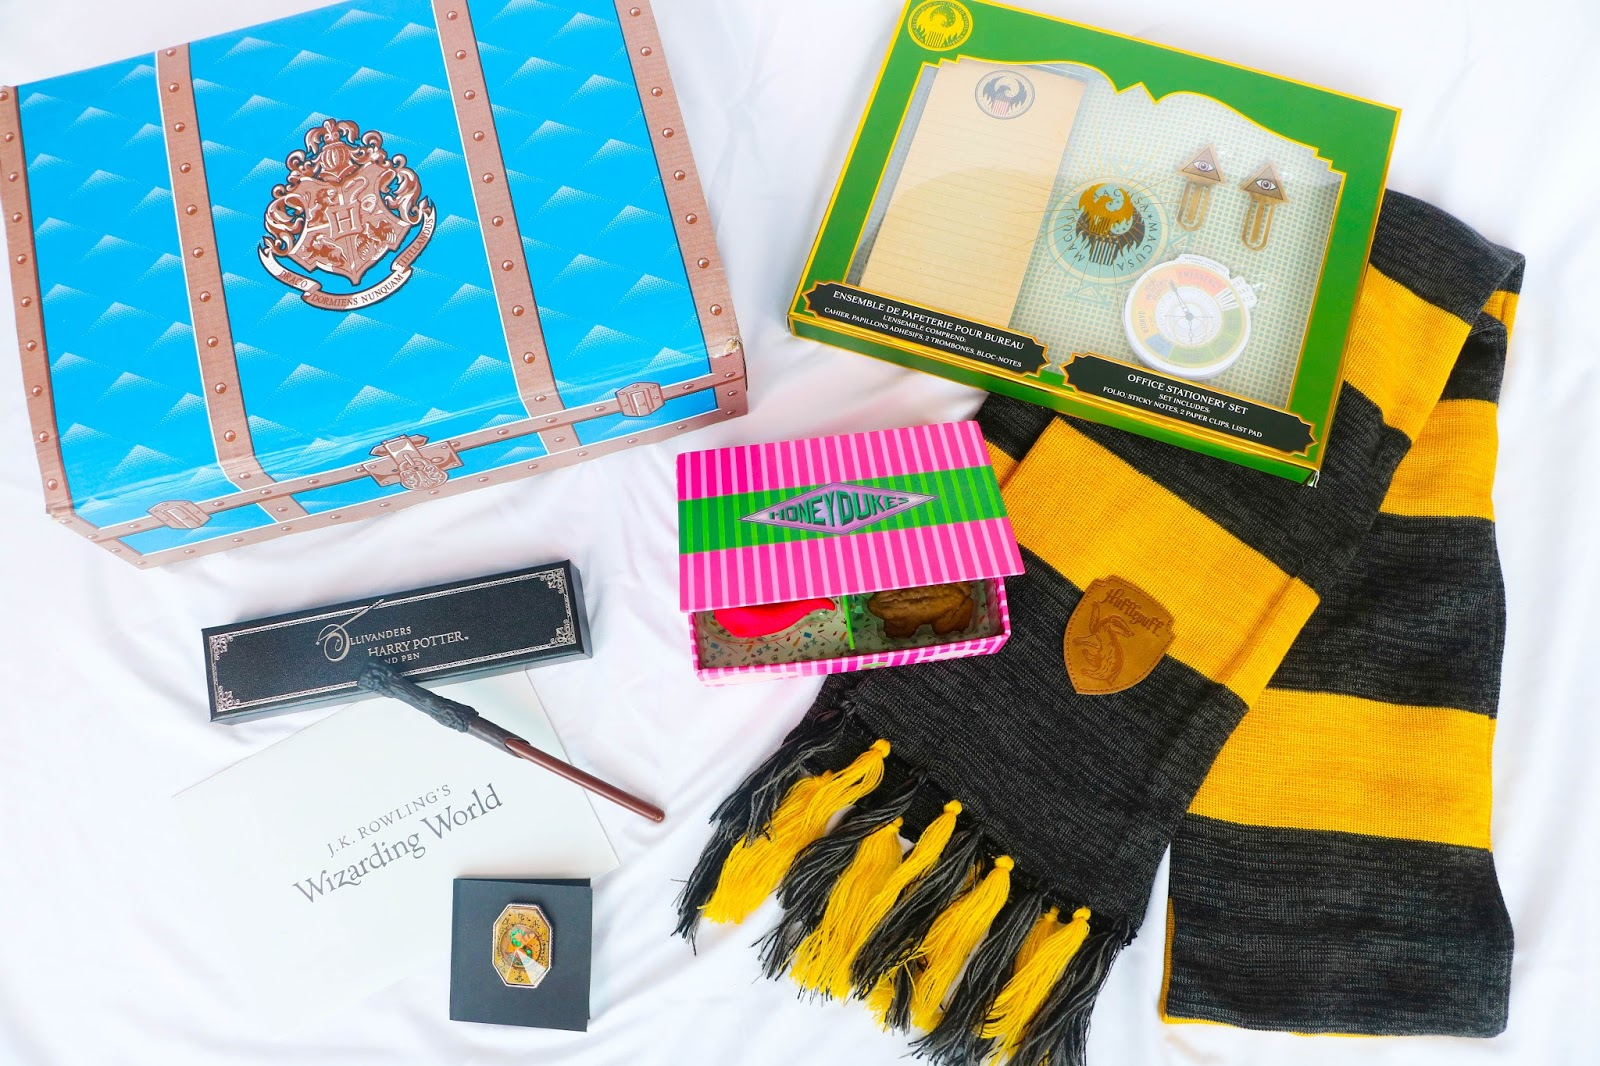 Unboxing Lootcrate's J.K. Rowling's Wizarding World September 2017